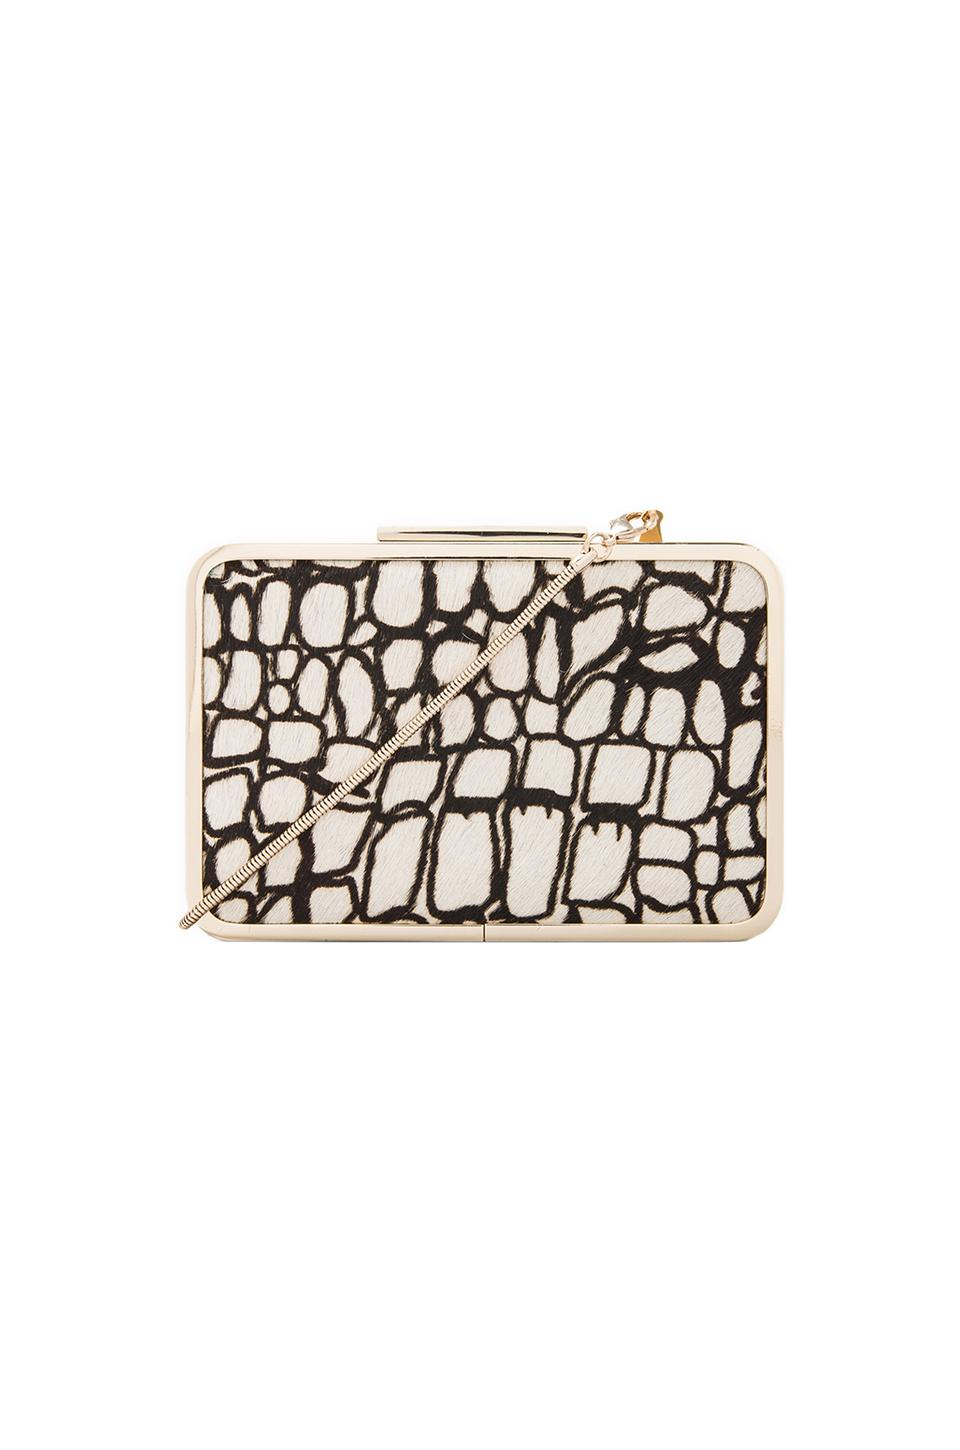 Pour La Victoire Clemence Minaudiere Clutch in White/Black